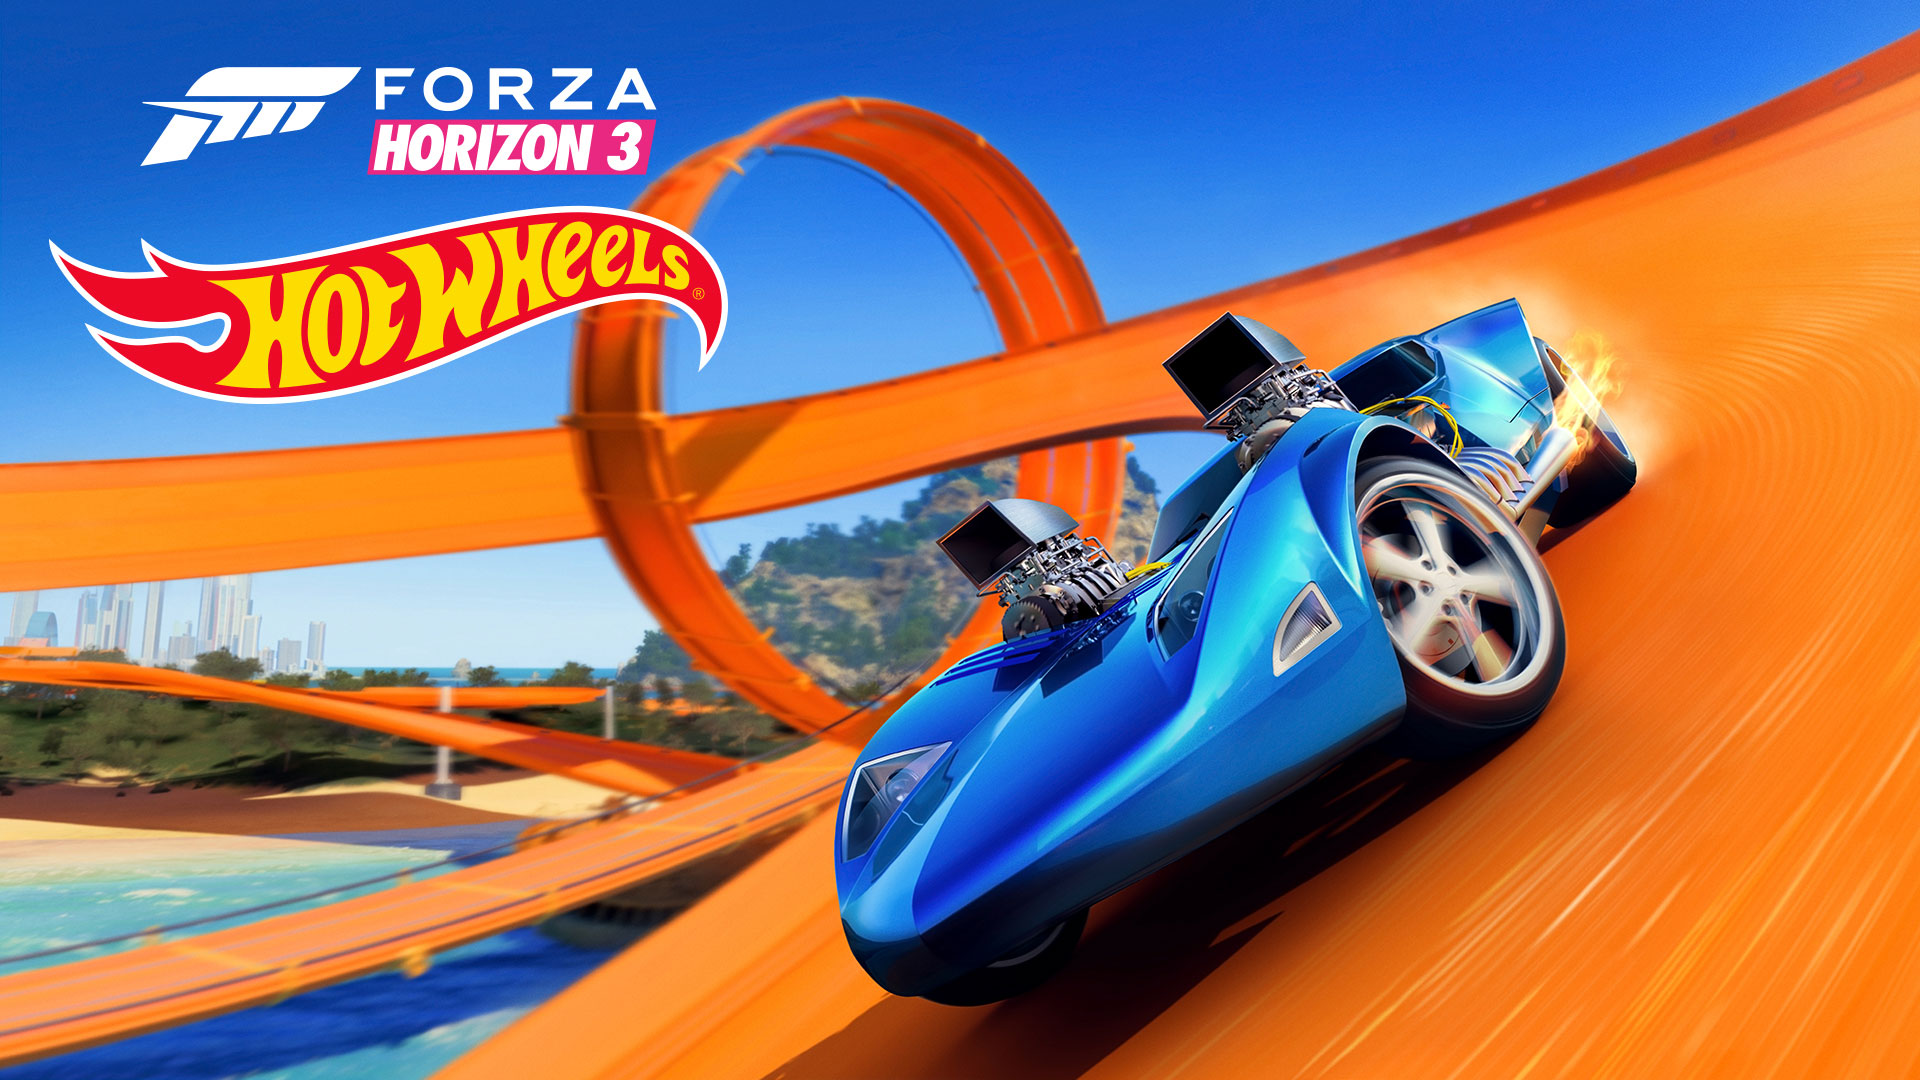 forza horizon 3 u2019s getting a cool hot wheels expansion Hit Rod Hot Rod Cartoons Clip Art